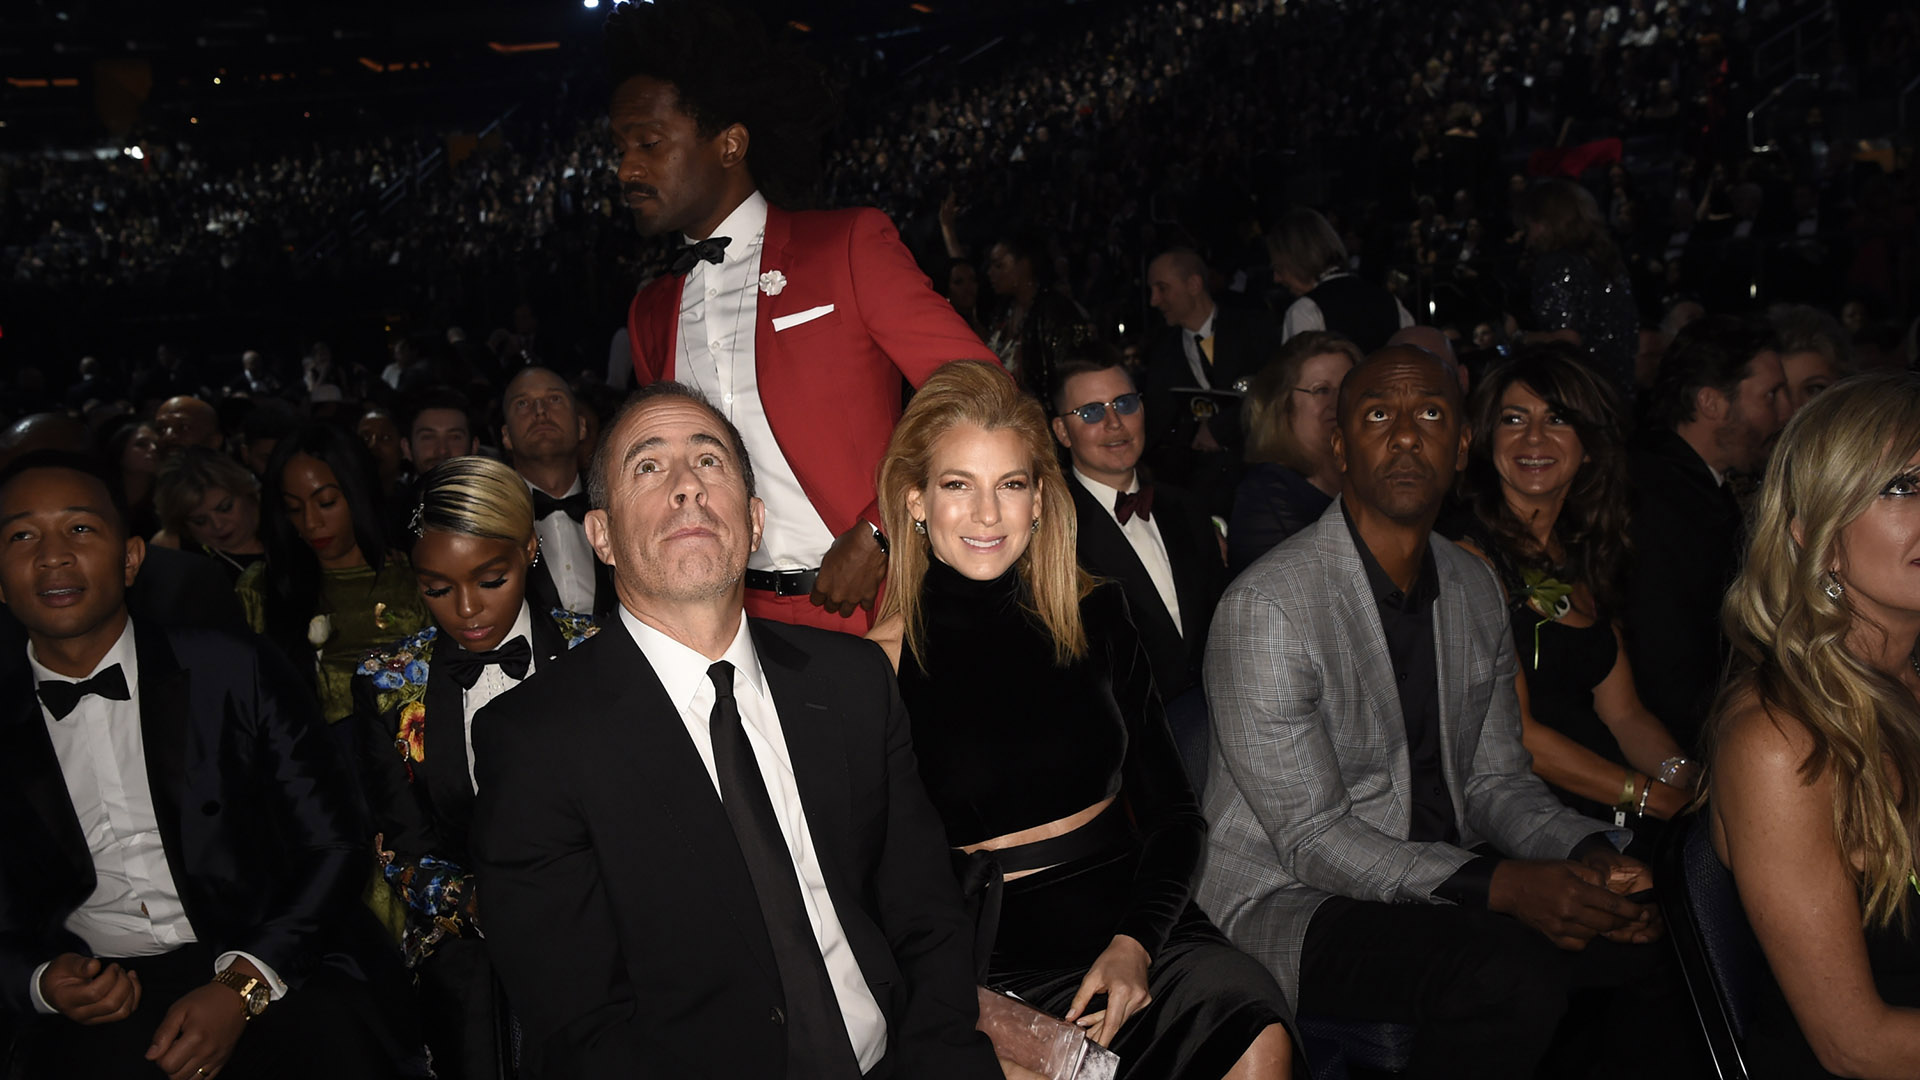 Comedian and 2018 GRAMMY nominee Jerry Seinfeld looks up, while his wife, Jessica, gives the camera a big grin.